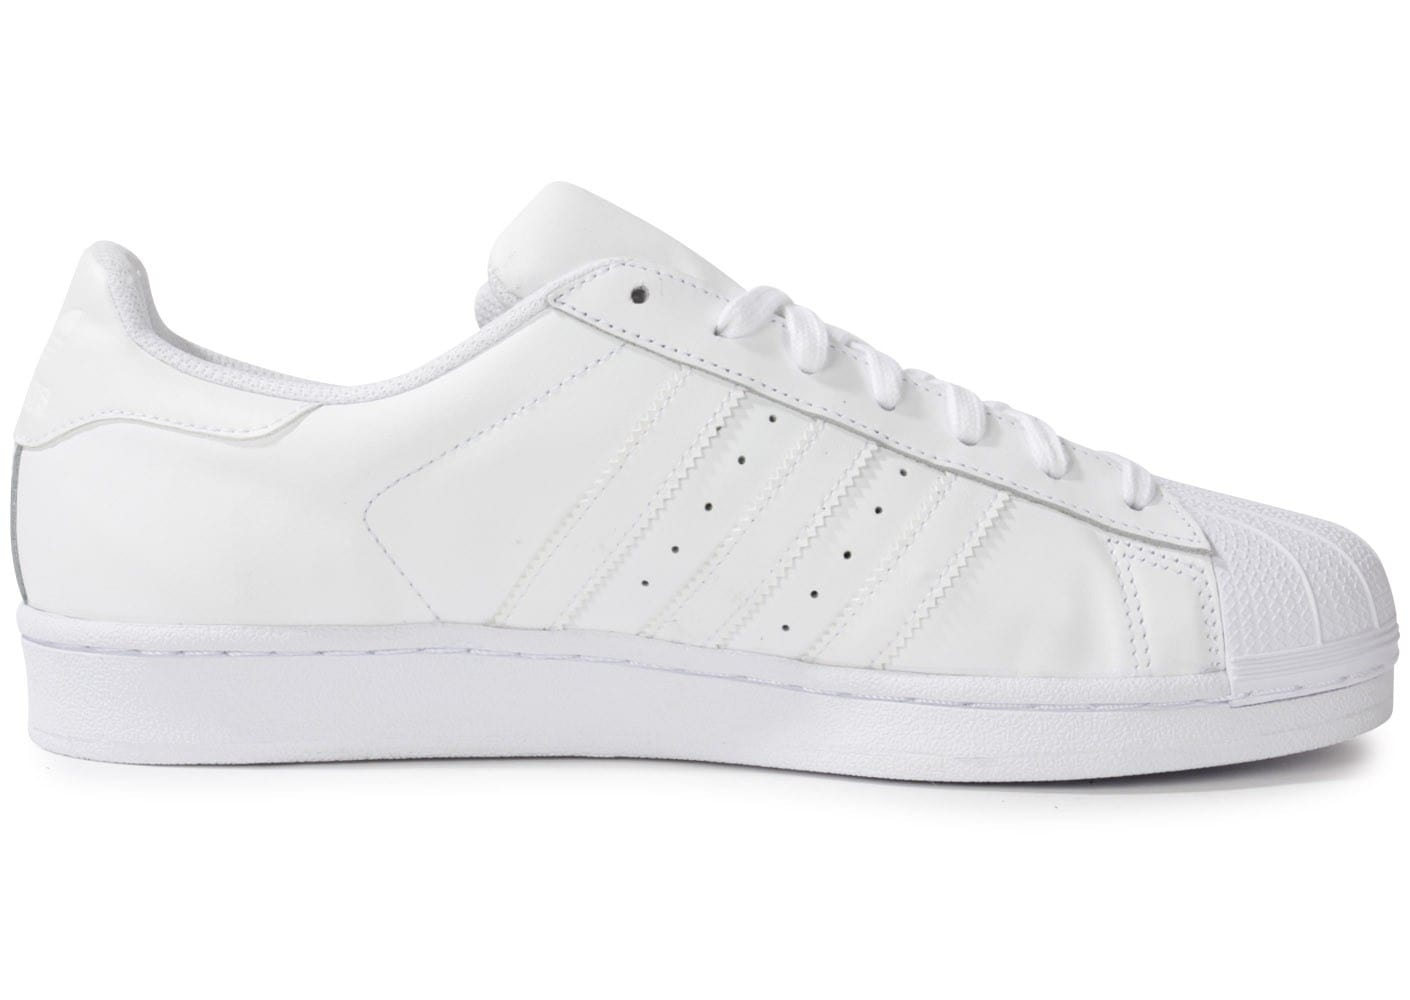 France Adidas Superstar Foundation soldes Blanche 76ybfg